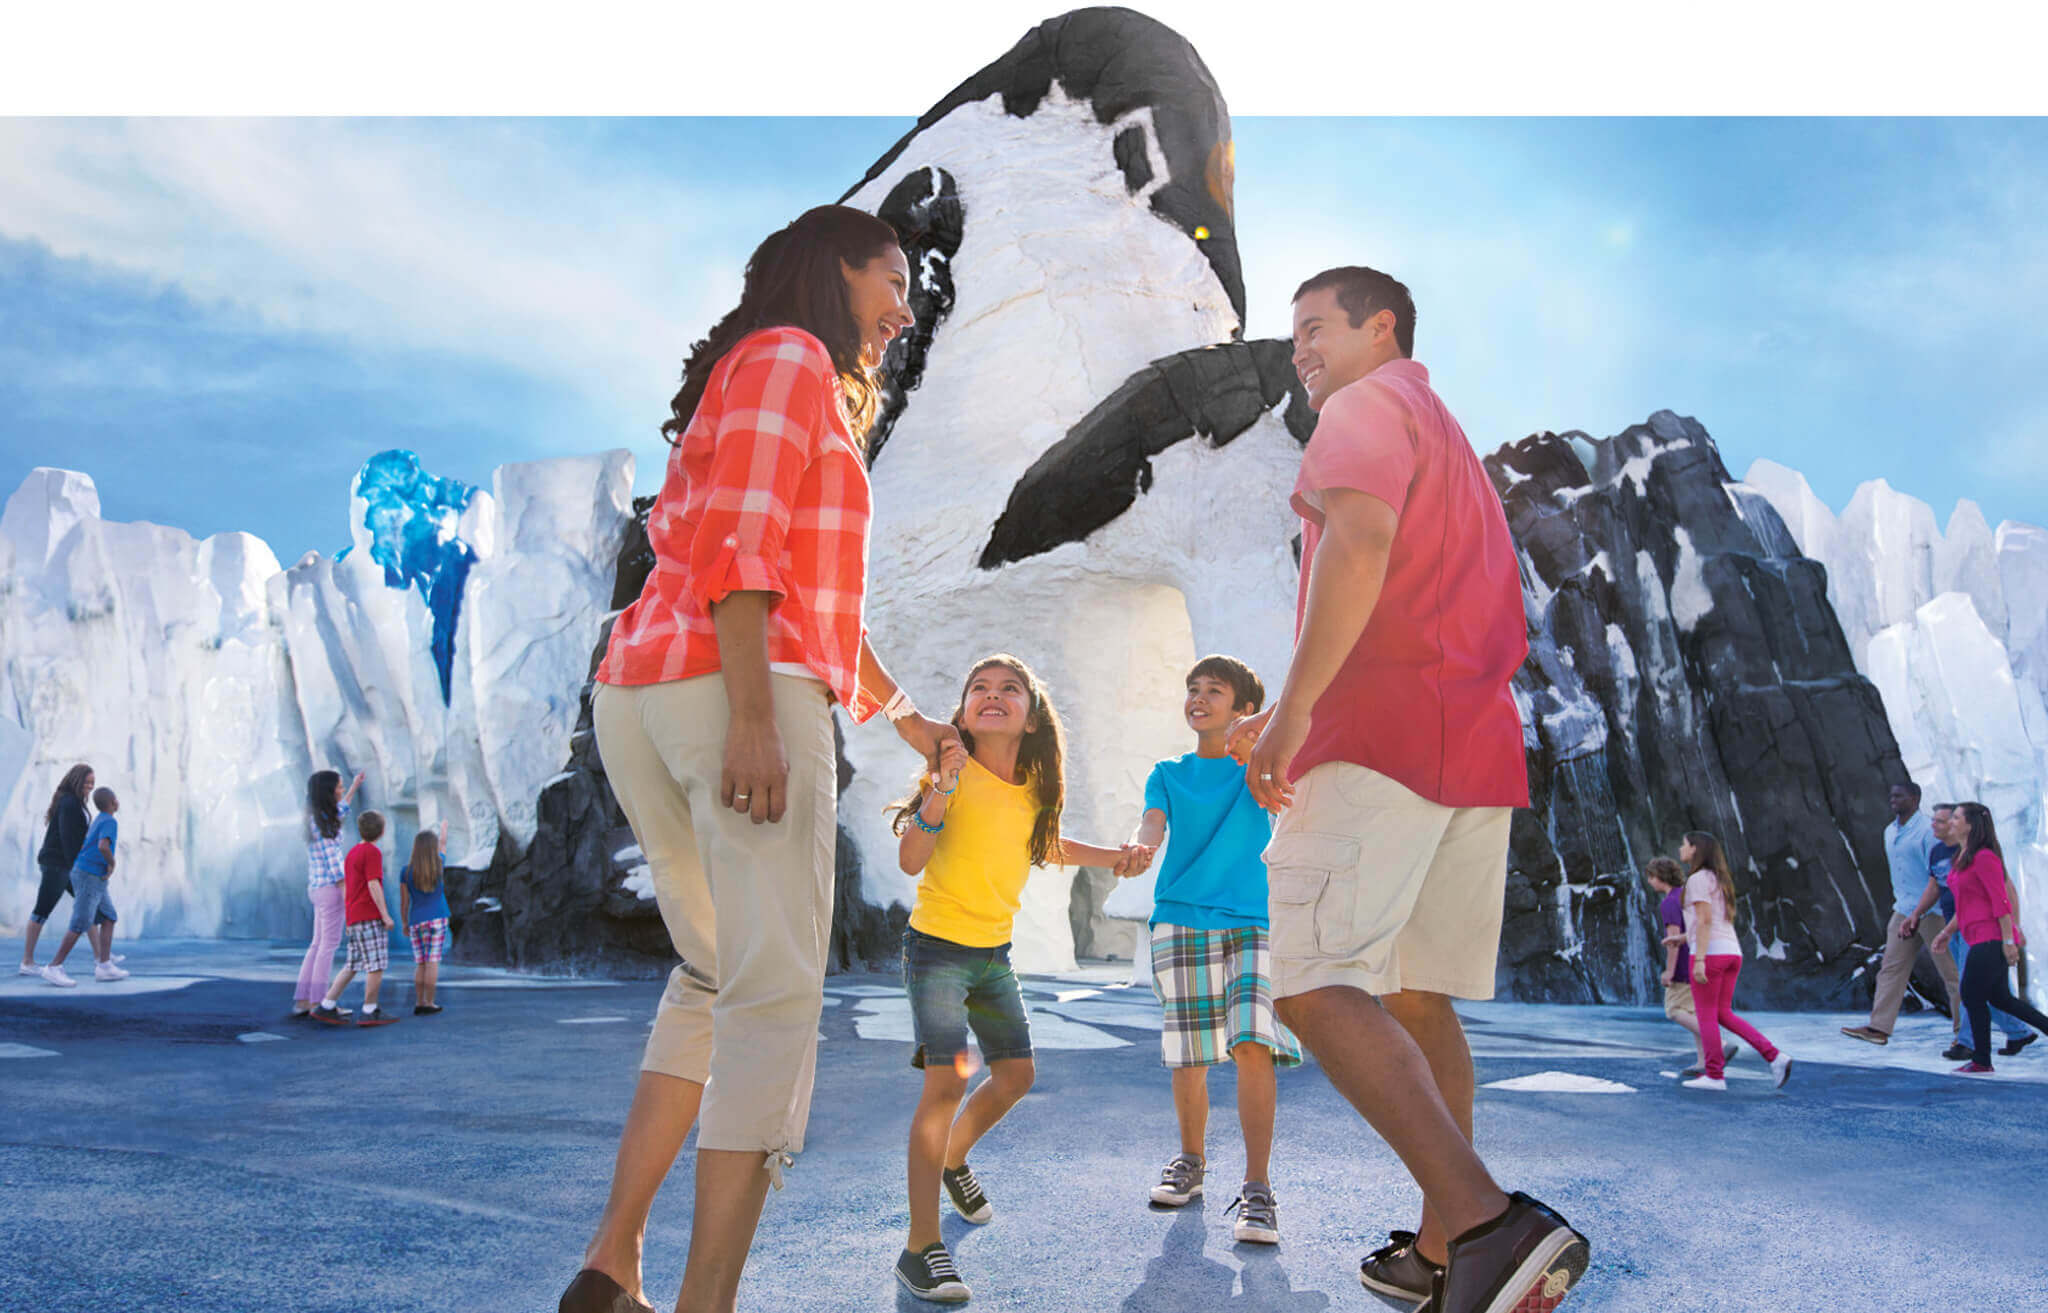 Book a Thrills & Chills Vacation Package at Busch Gardens Tampa Bay and SeaWorld Orlando